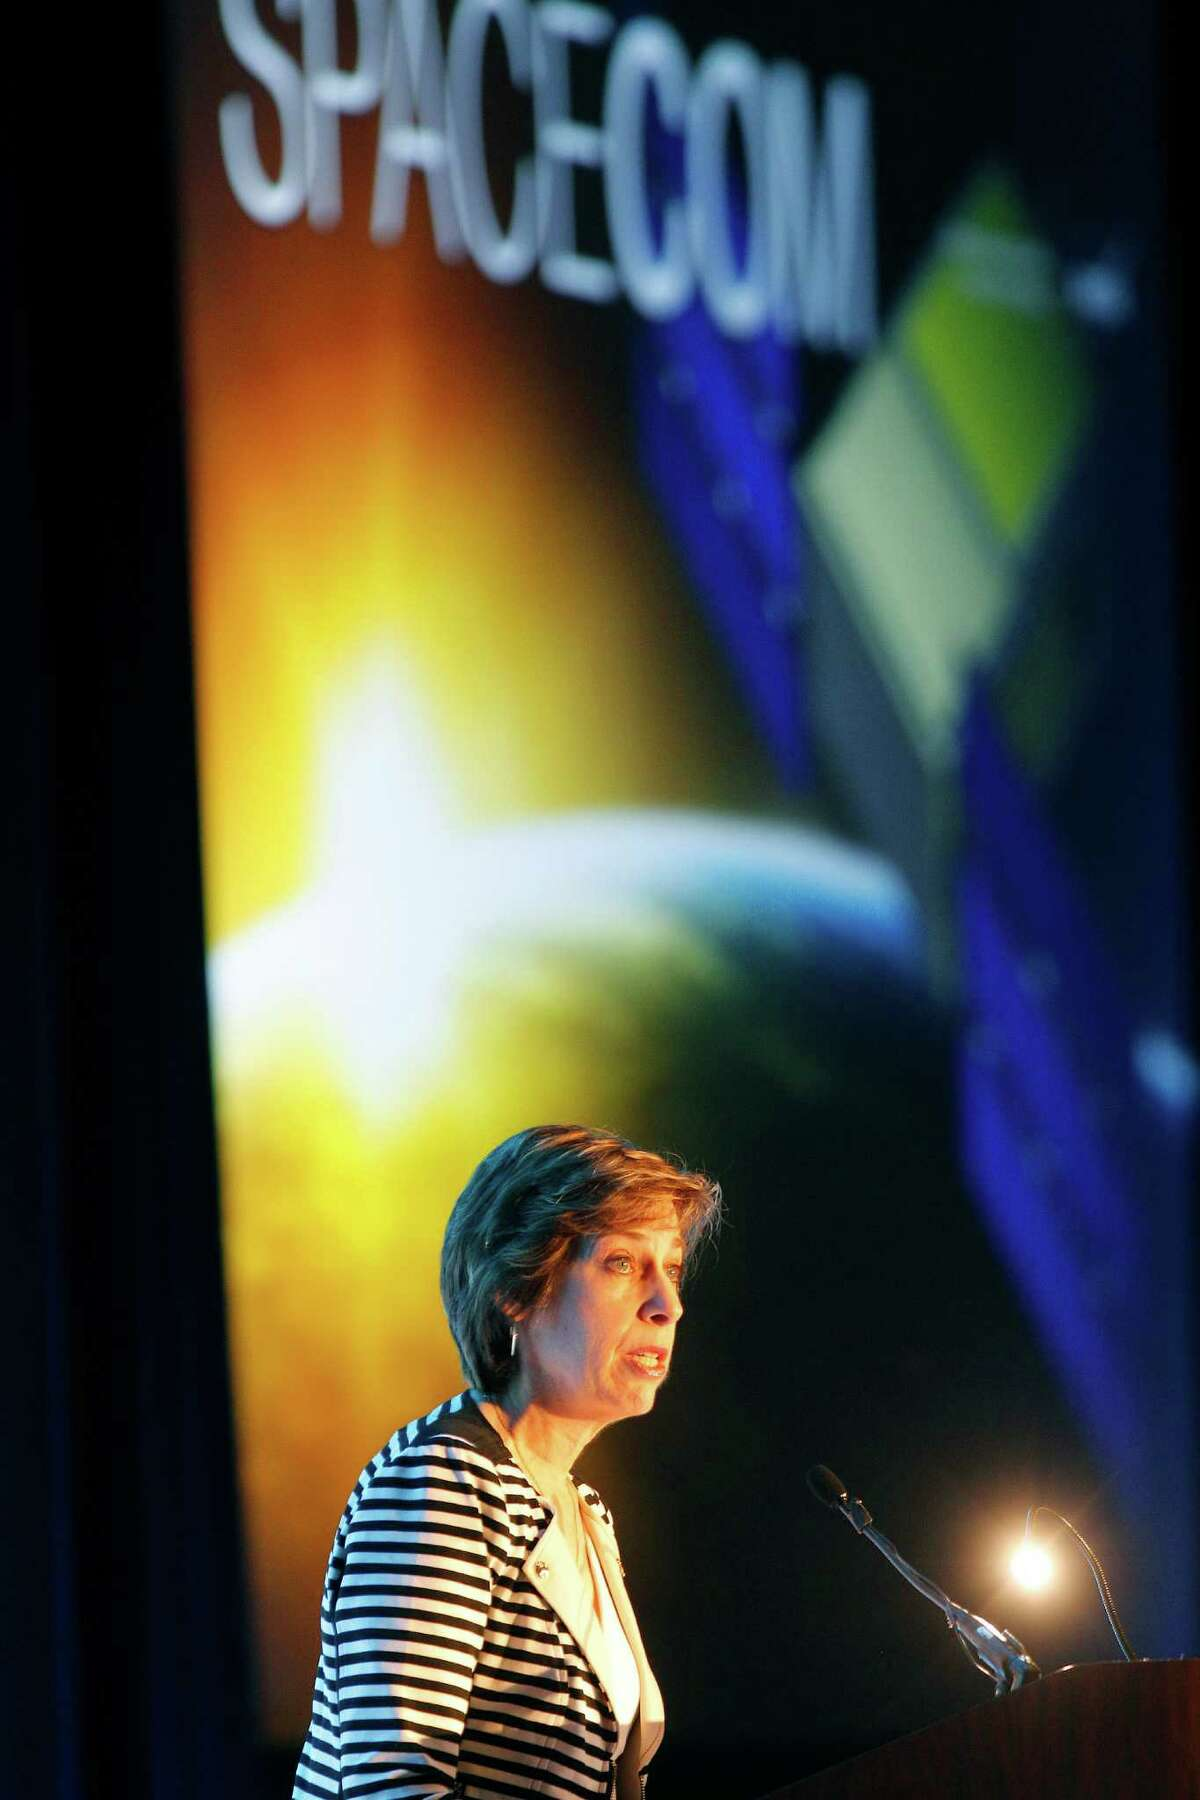 Director of NASA Johnson Space Center Dr. Ellen Ochoa welcomes SpaceCom attendees Tuesday, Nov. 17, 2015, at the George R. Brown Convention Center in Houston. Maj. Gen. Charles Frank Bolden Jr., administrator of NASA, gave a keynote speech during SpaceCom. ( Steve Gonzales / Houston Chronicle )